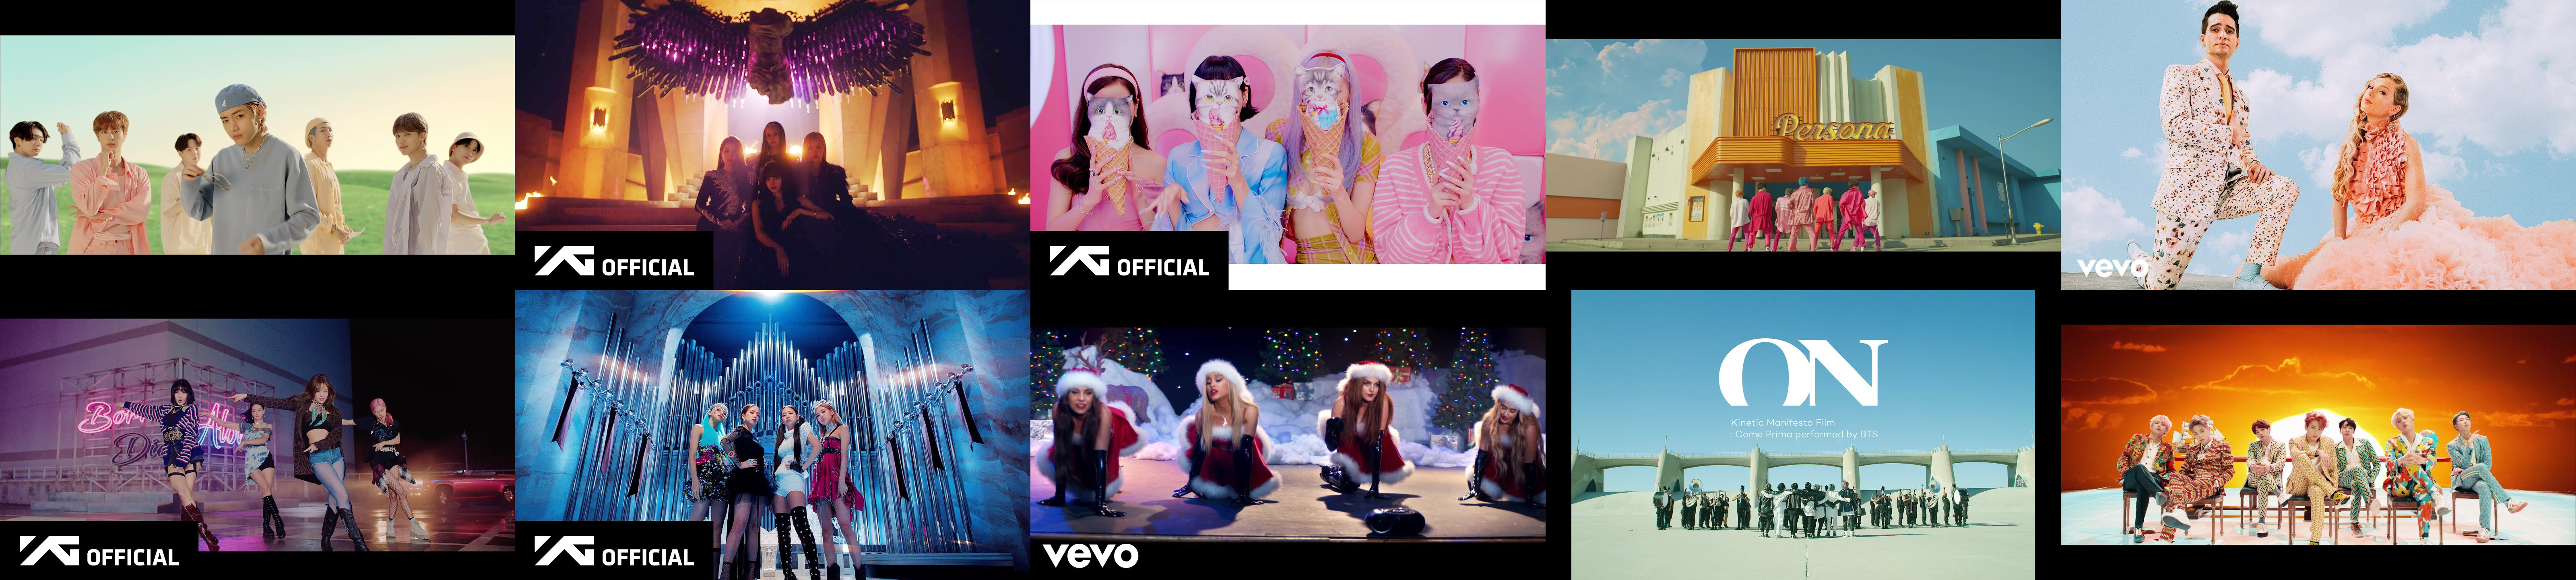 Top 10 Most Viewed Music Video Debuts In 24 Hours On Youtube 2020 Routenote Blog